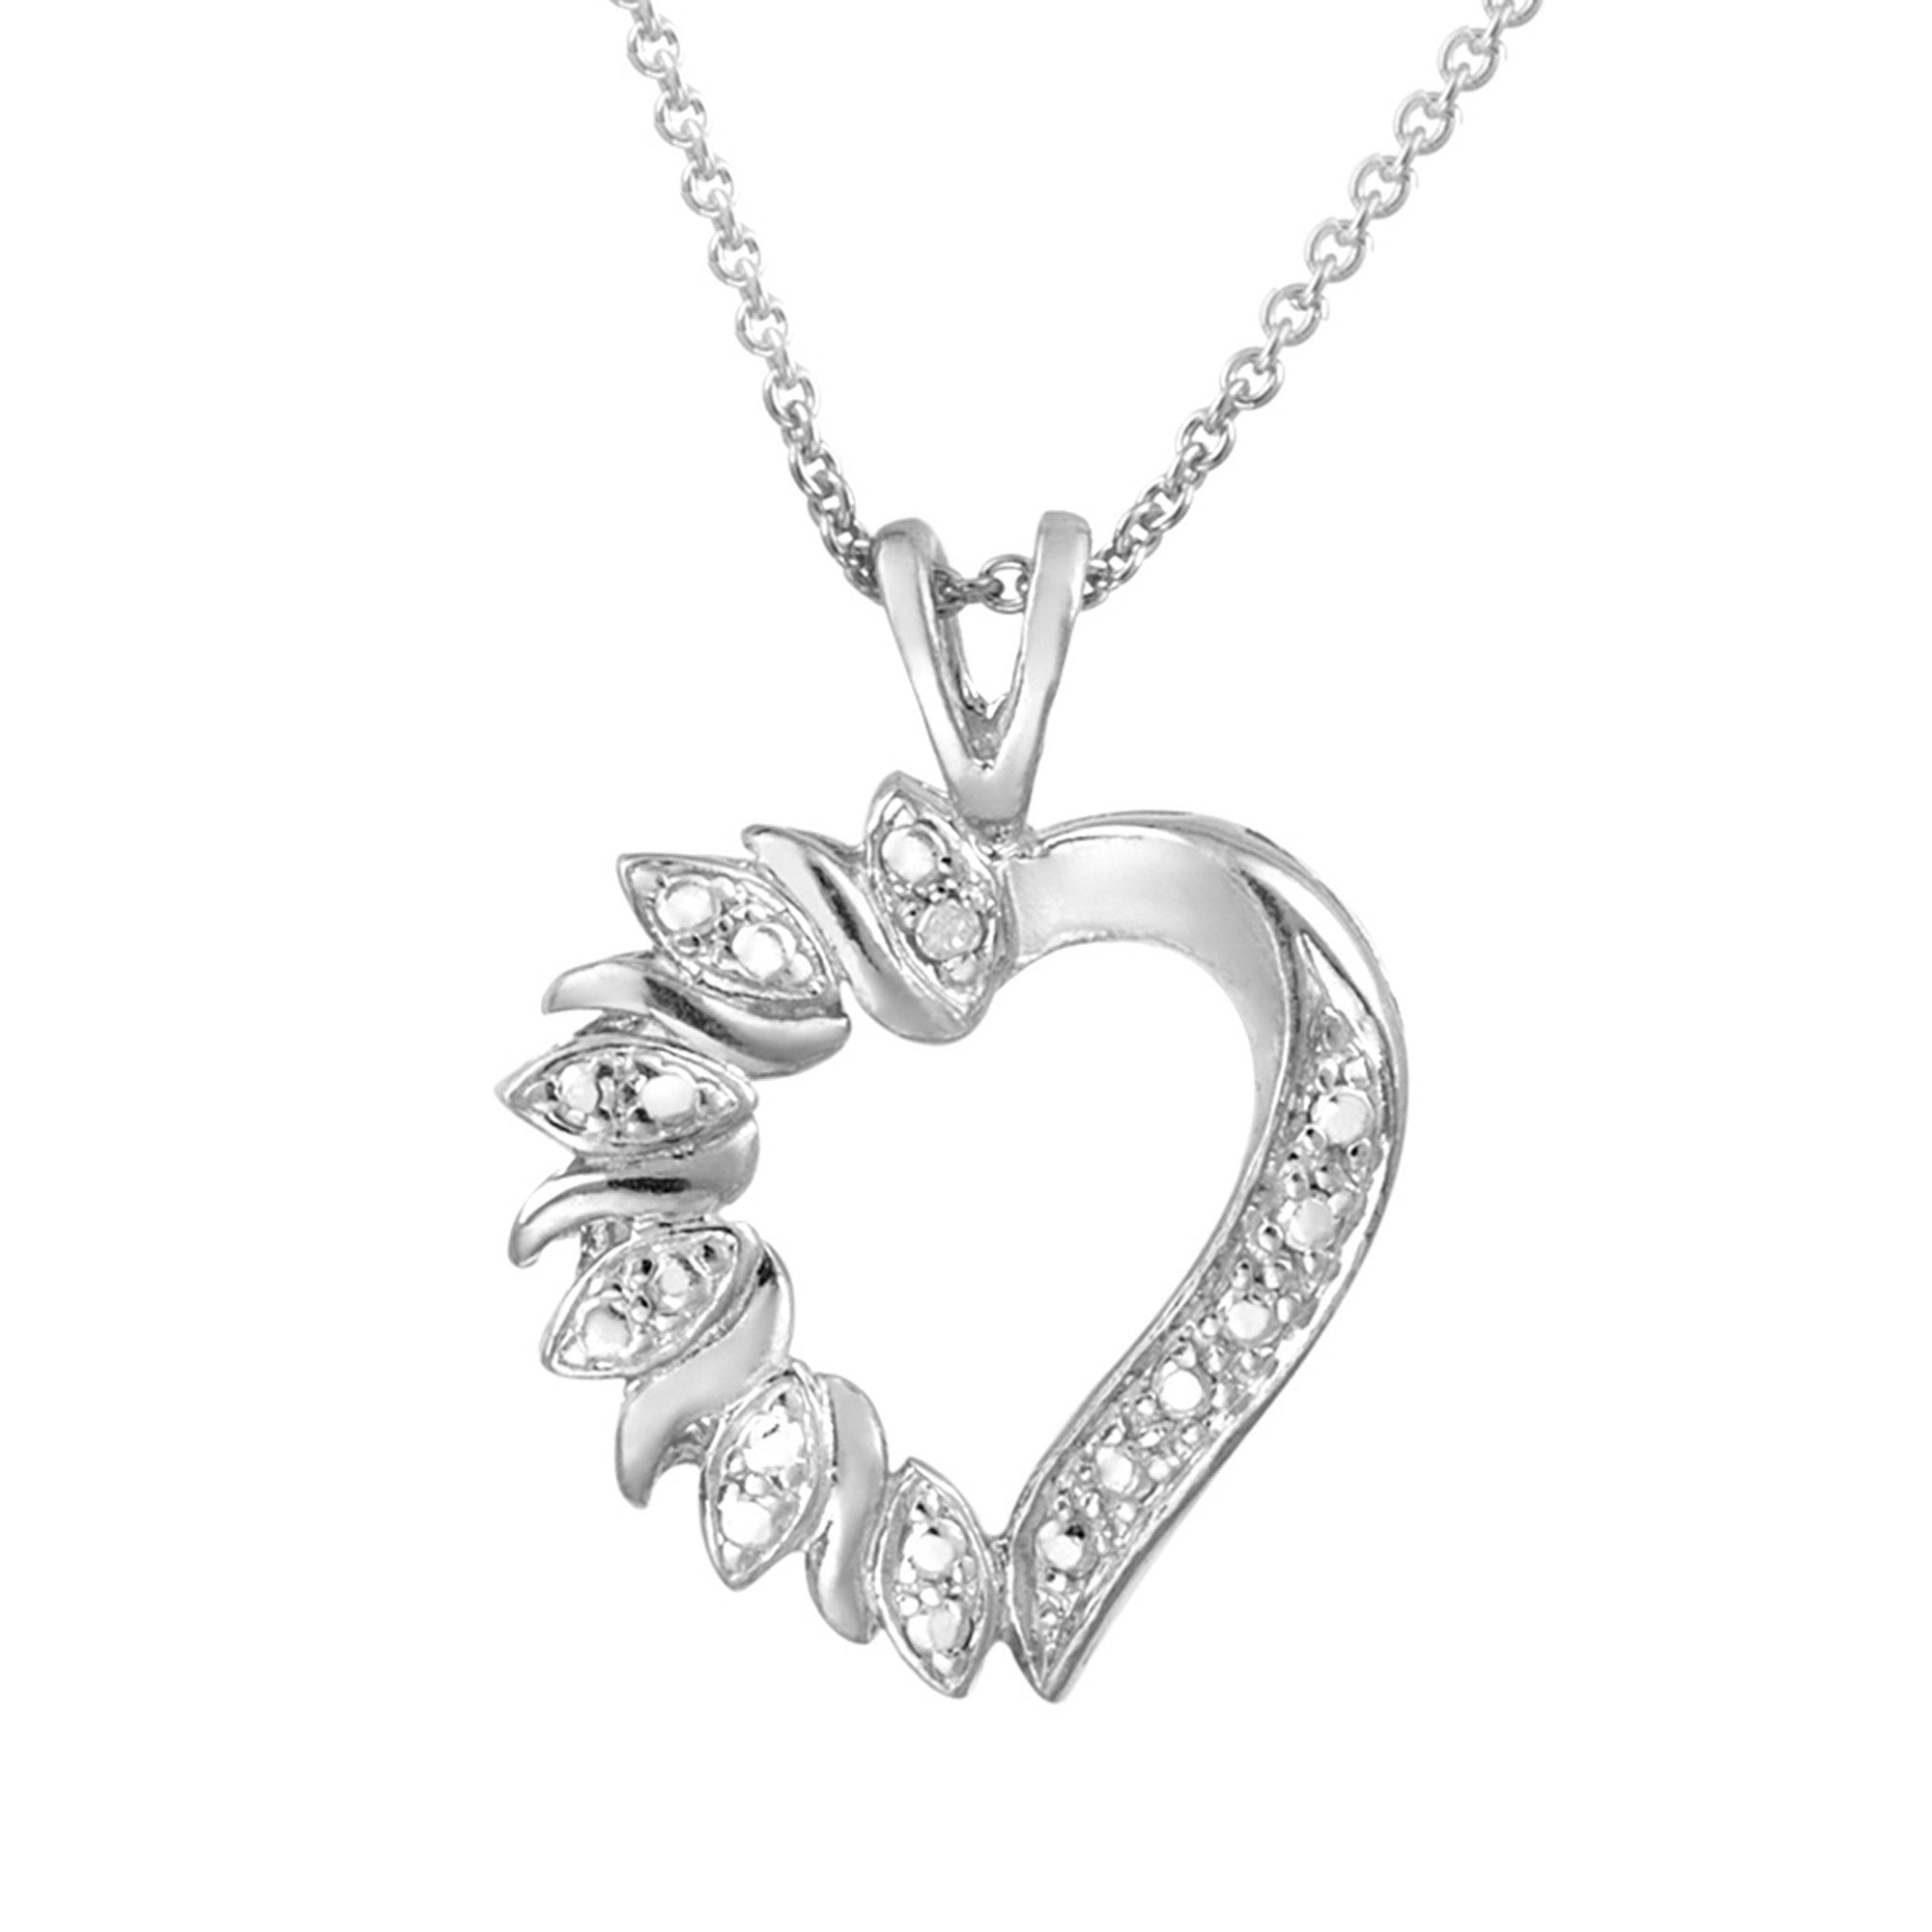 Heart Necklace With Diamond Accents - Sterling Silver